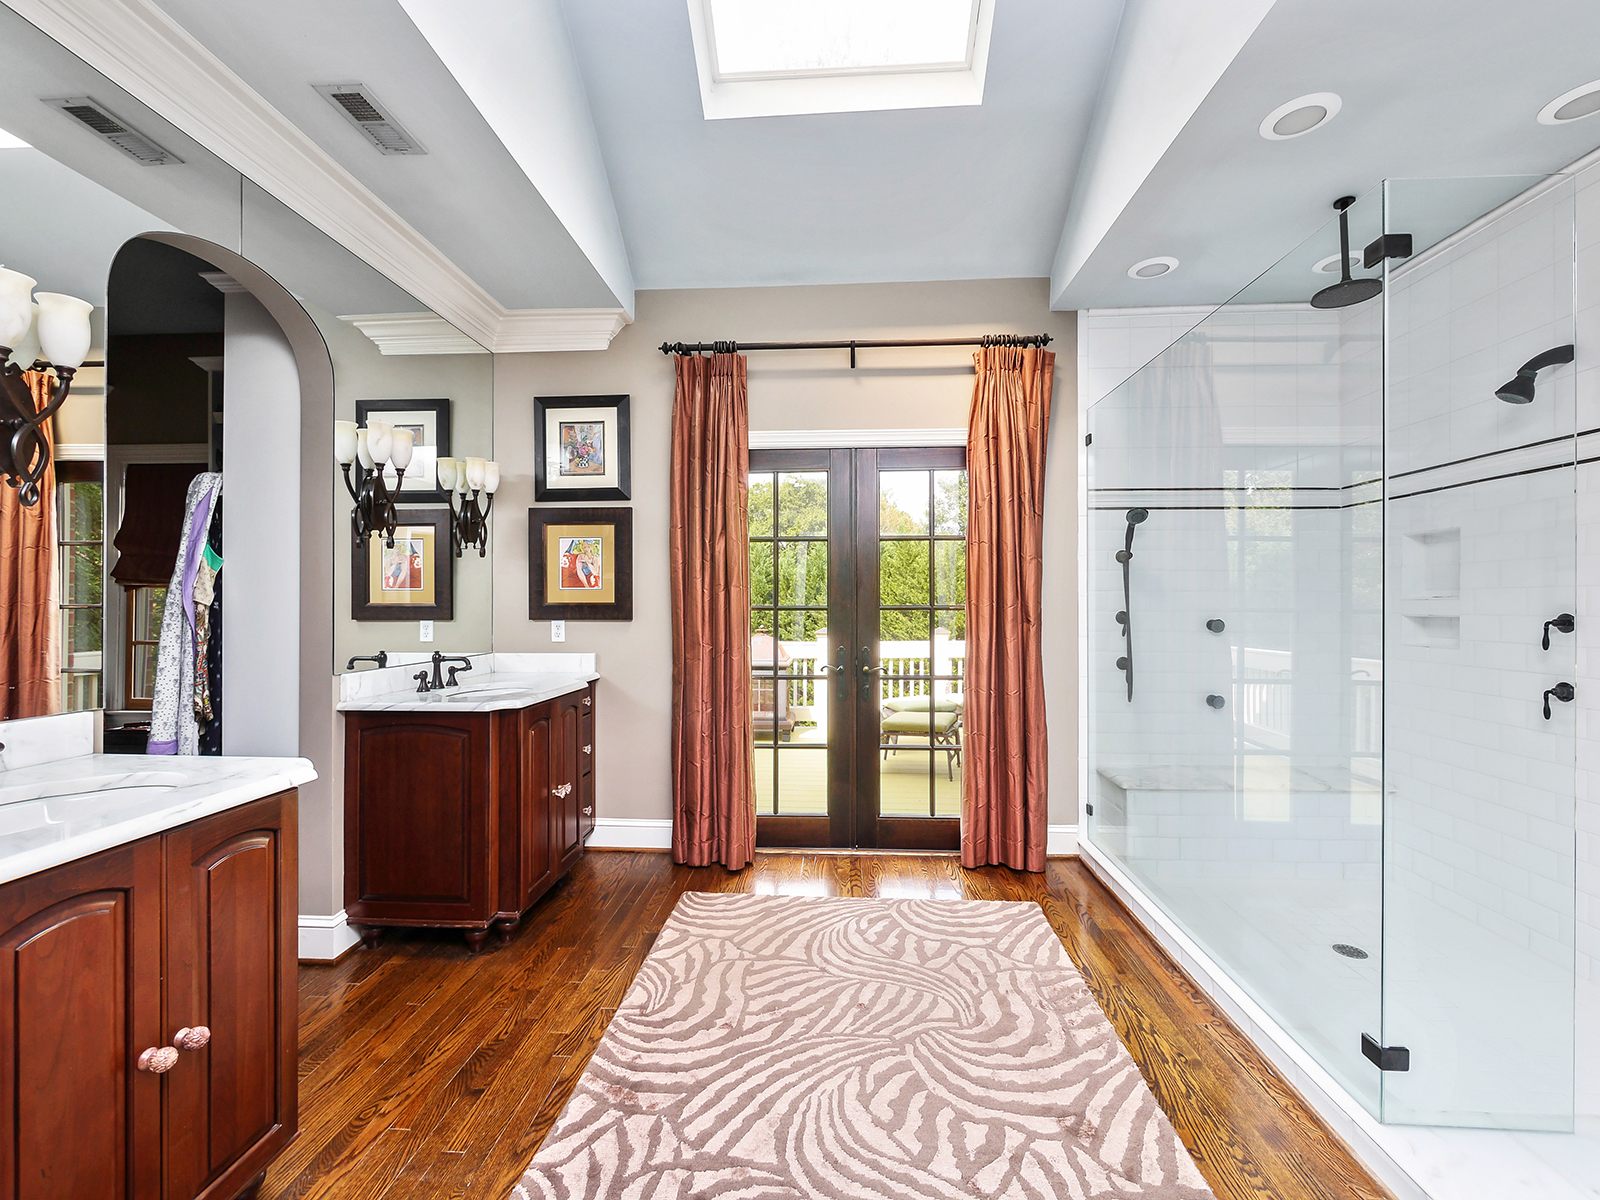 Home for sale in Providence High School